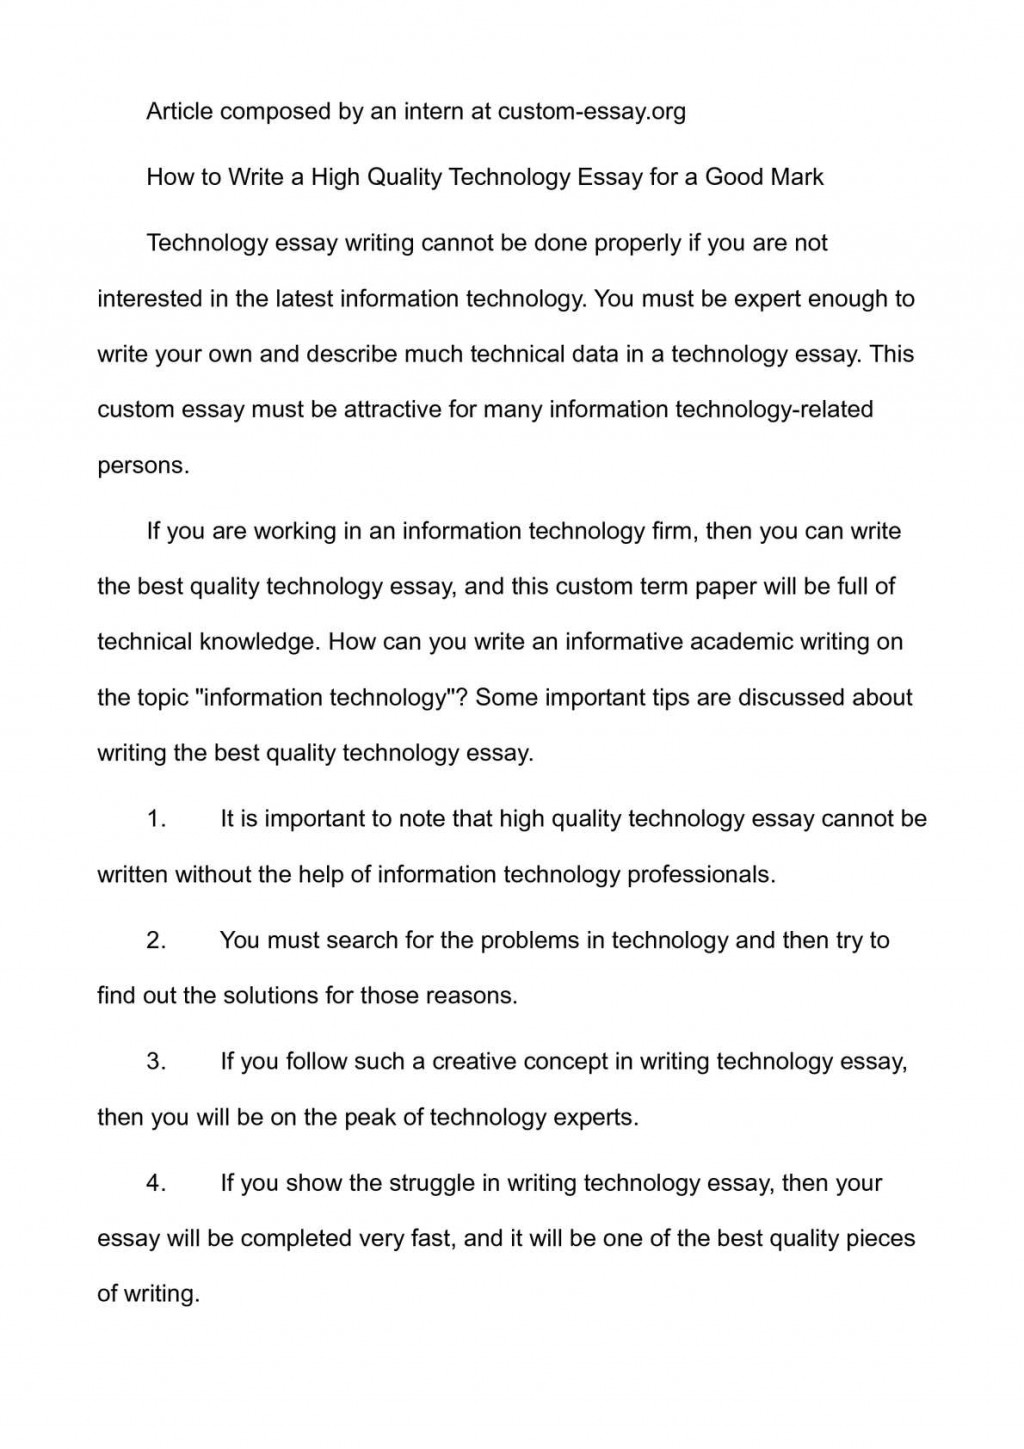 001 P1 Essay On Technology Breathtaking Advancement Reflection In The Classroom Technological Advancements And Their Ill-effects Large